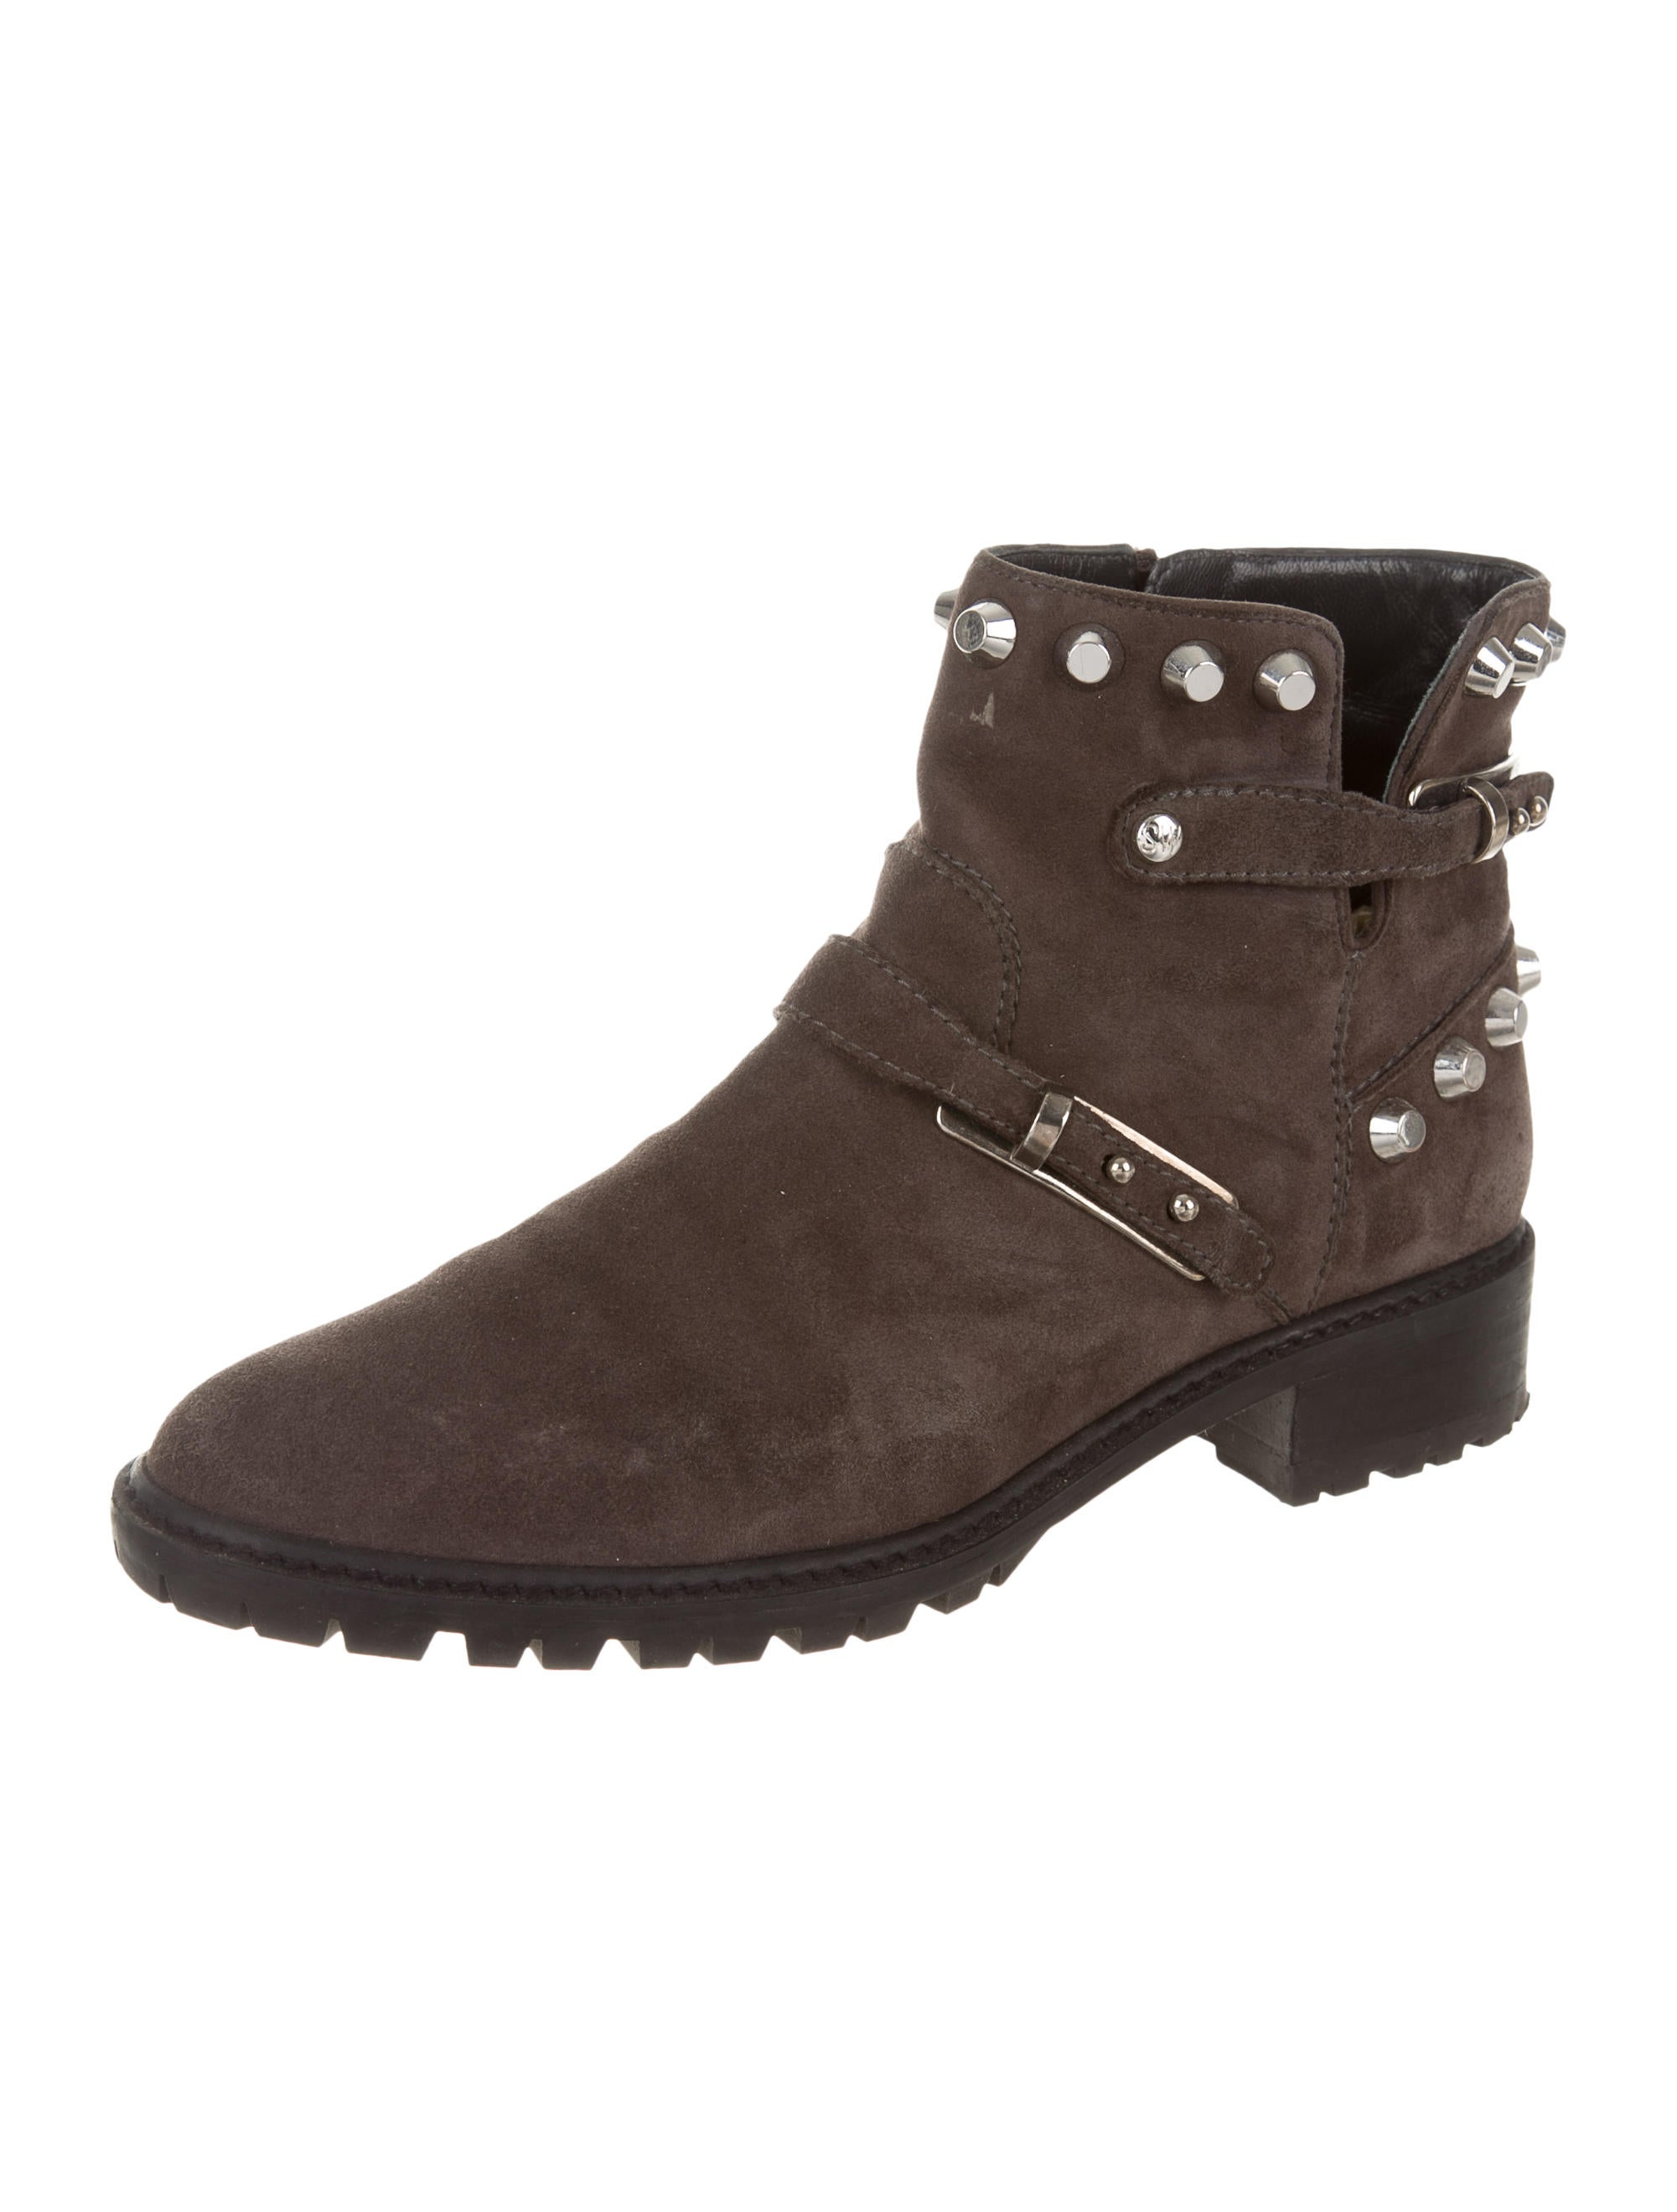 stuart weitzman studded suede ankle boots shoes